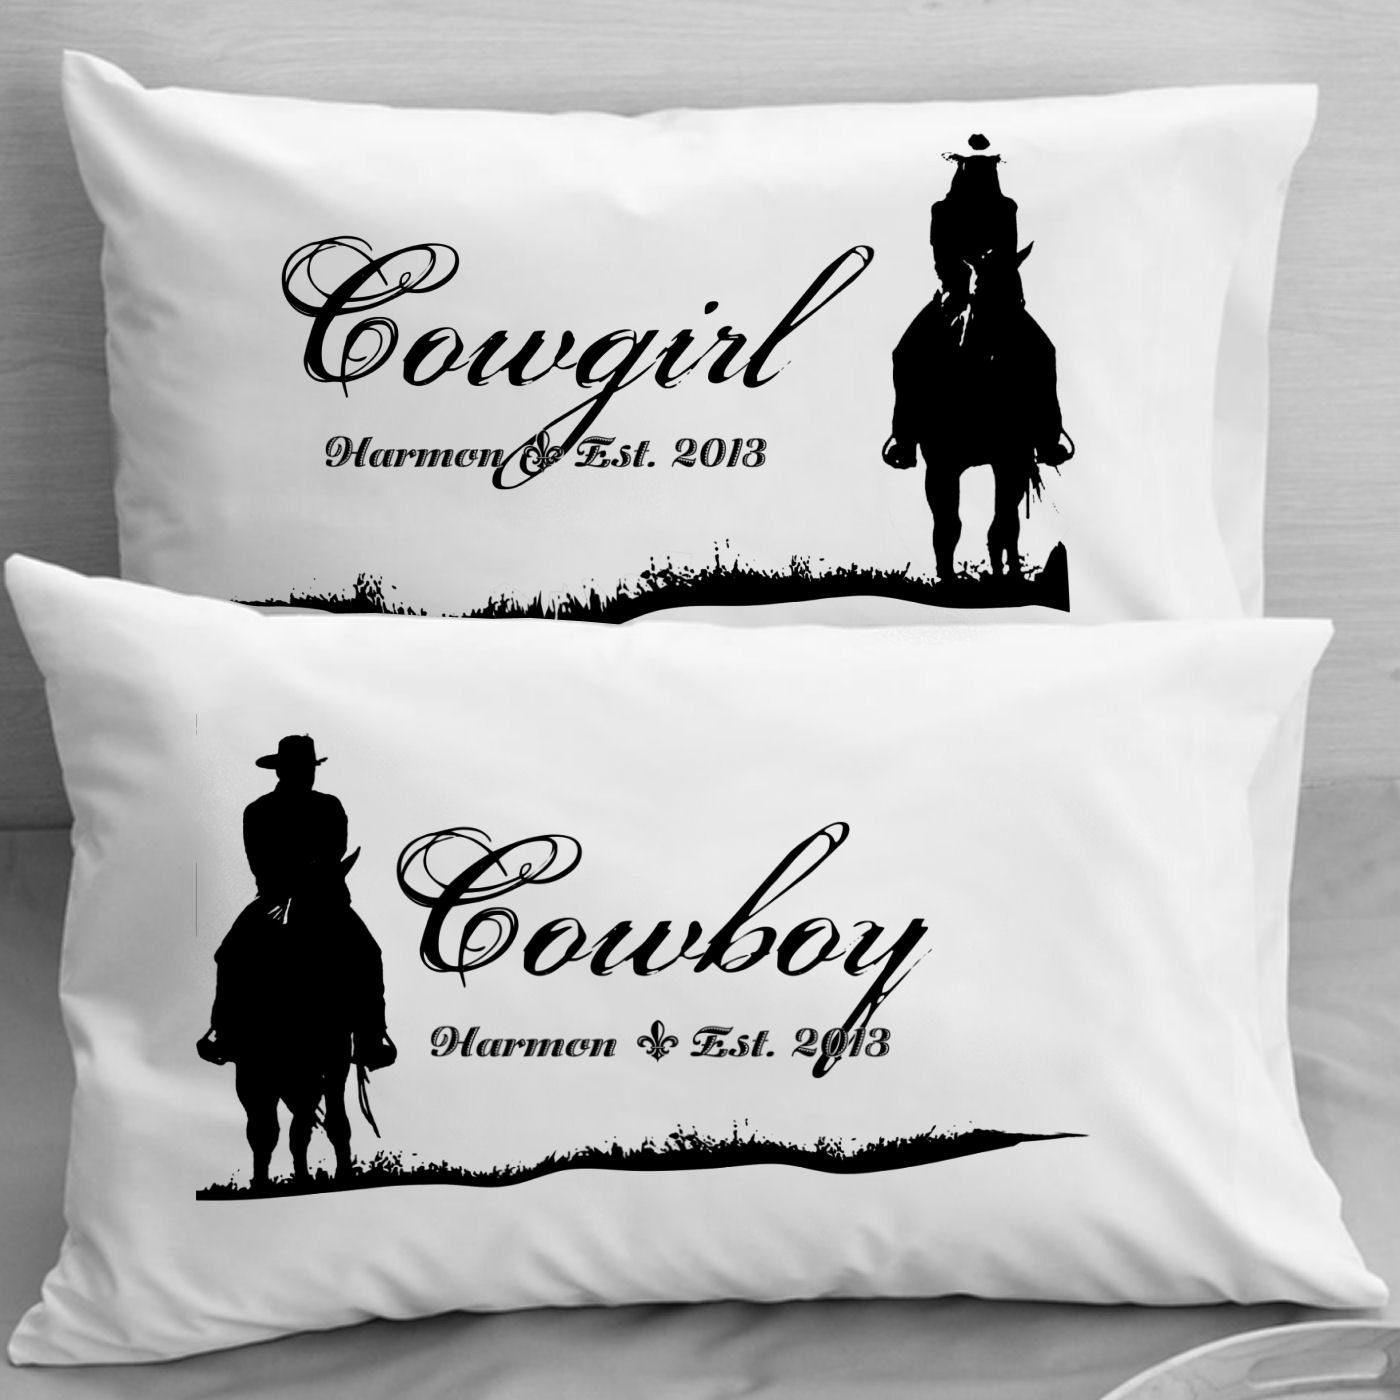 Wedding Gifts For Country Couple : ... Country Western Horse Wedding, Anniversary, gift idea for couples